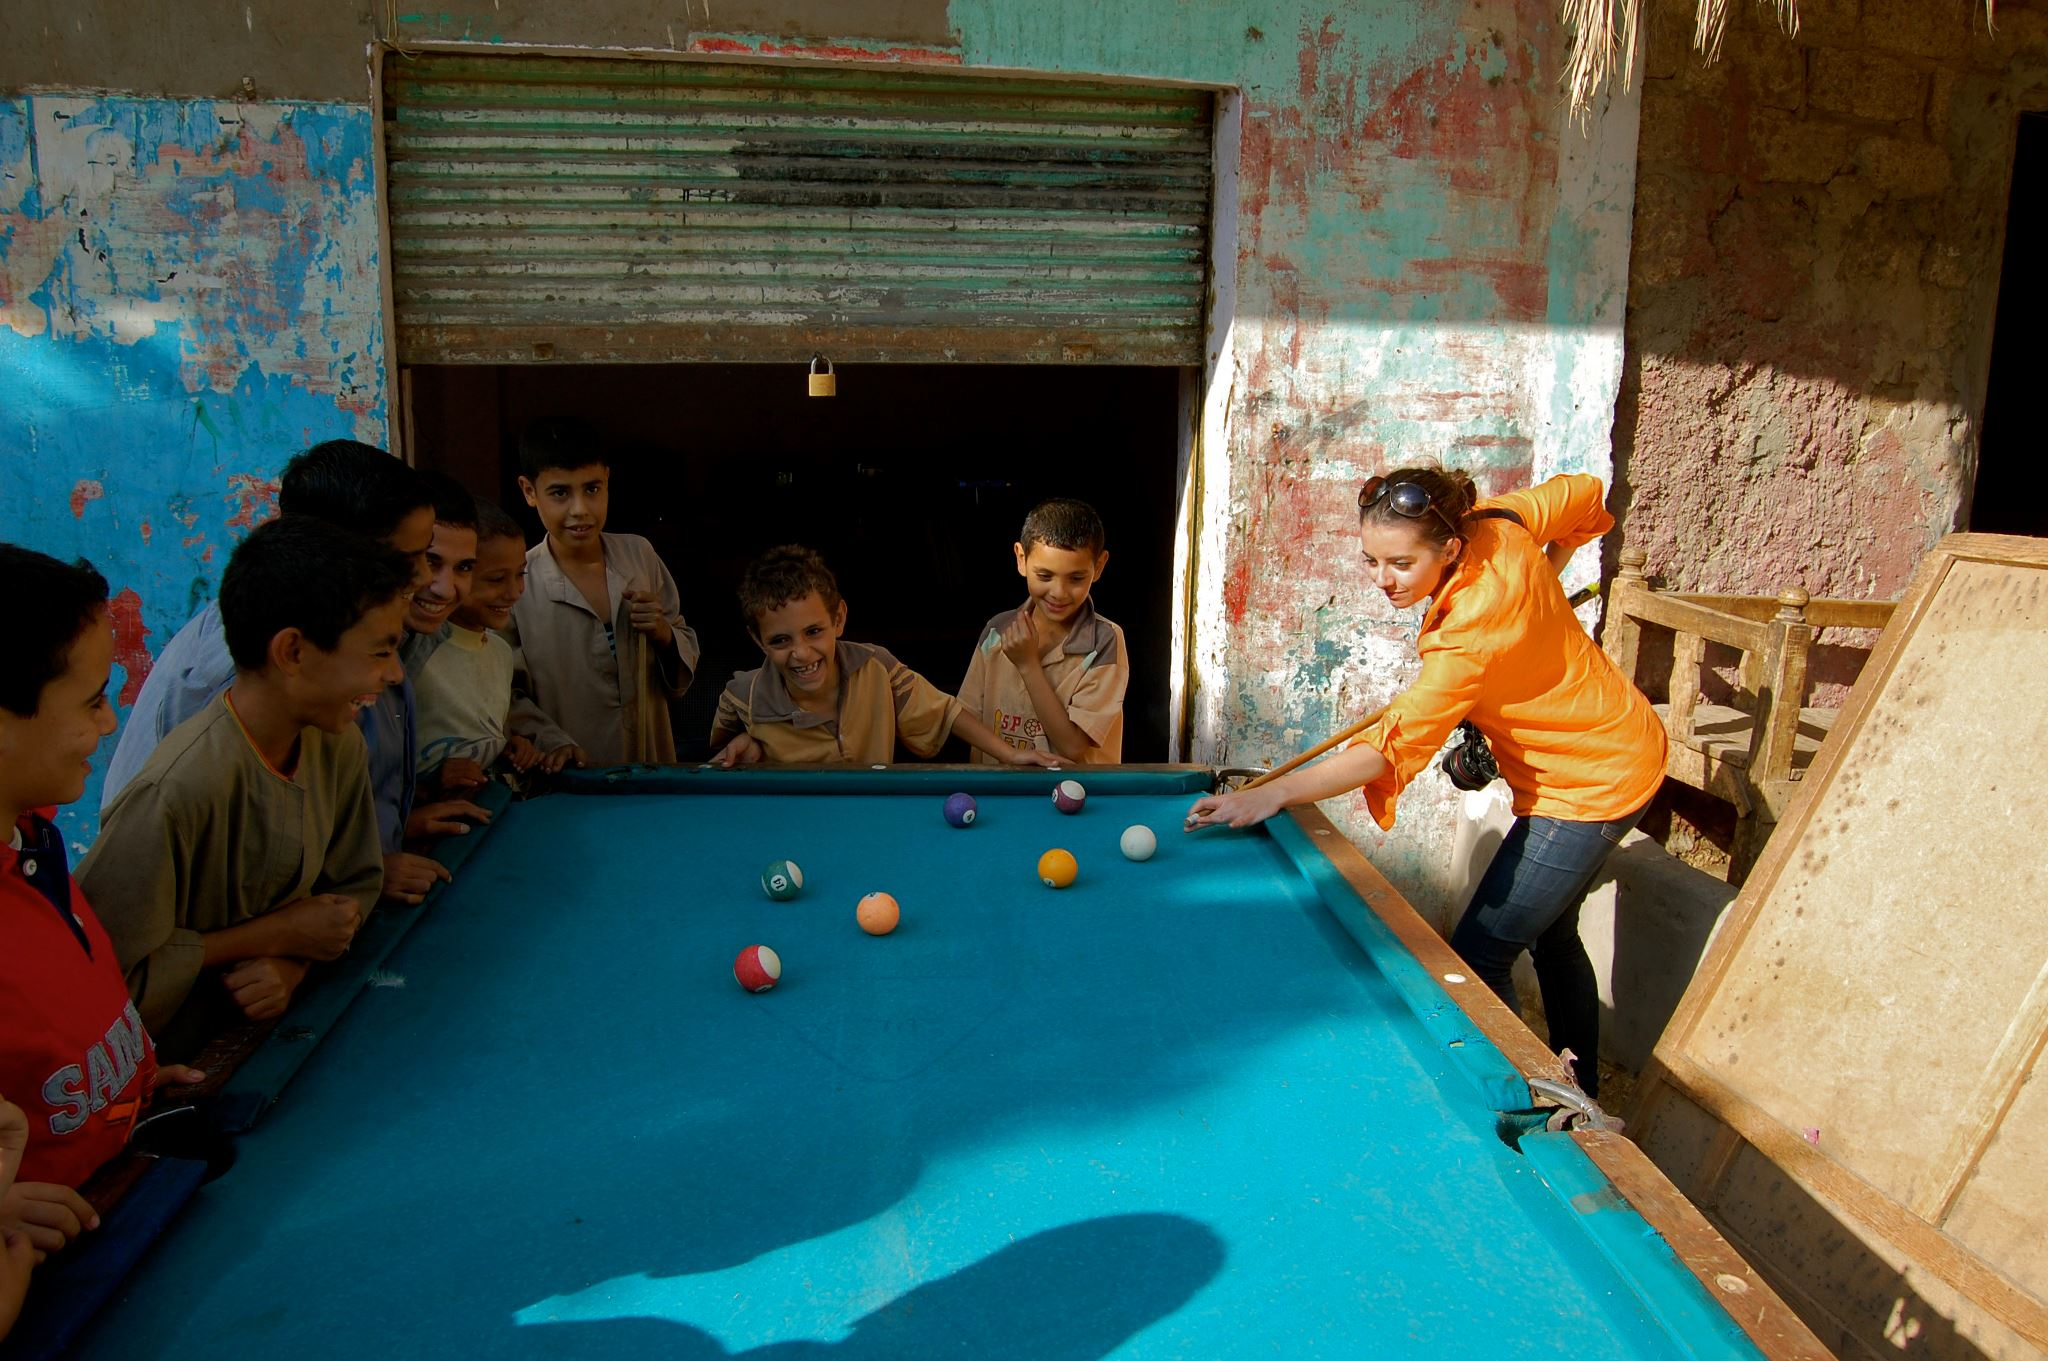 Playing pool with a group of Egyptian children in the countryside.